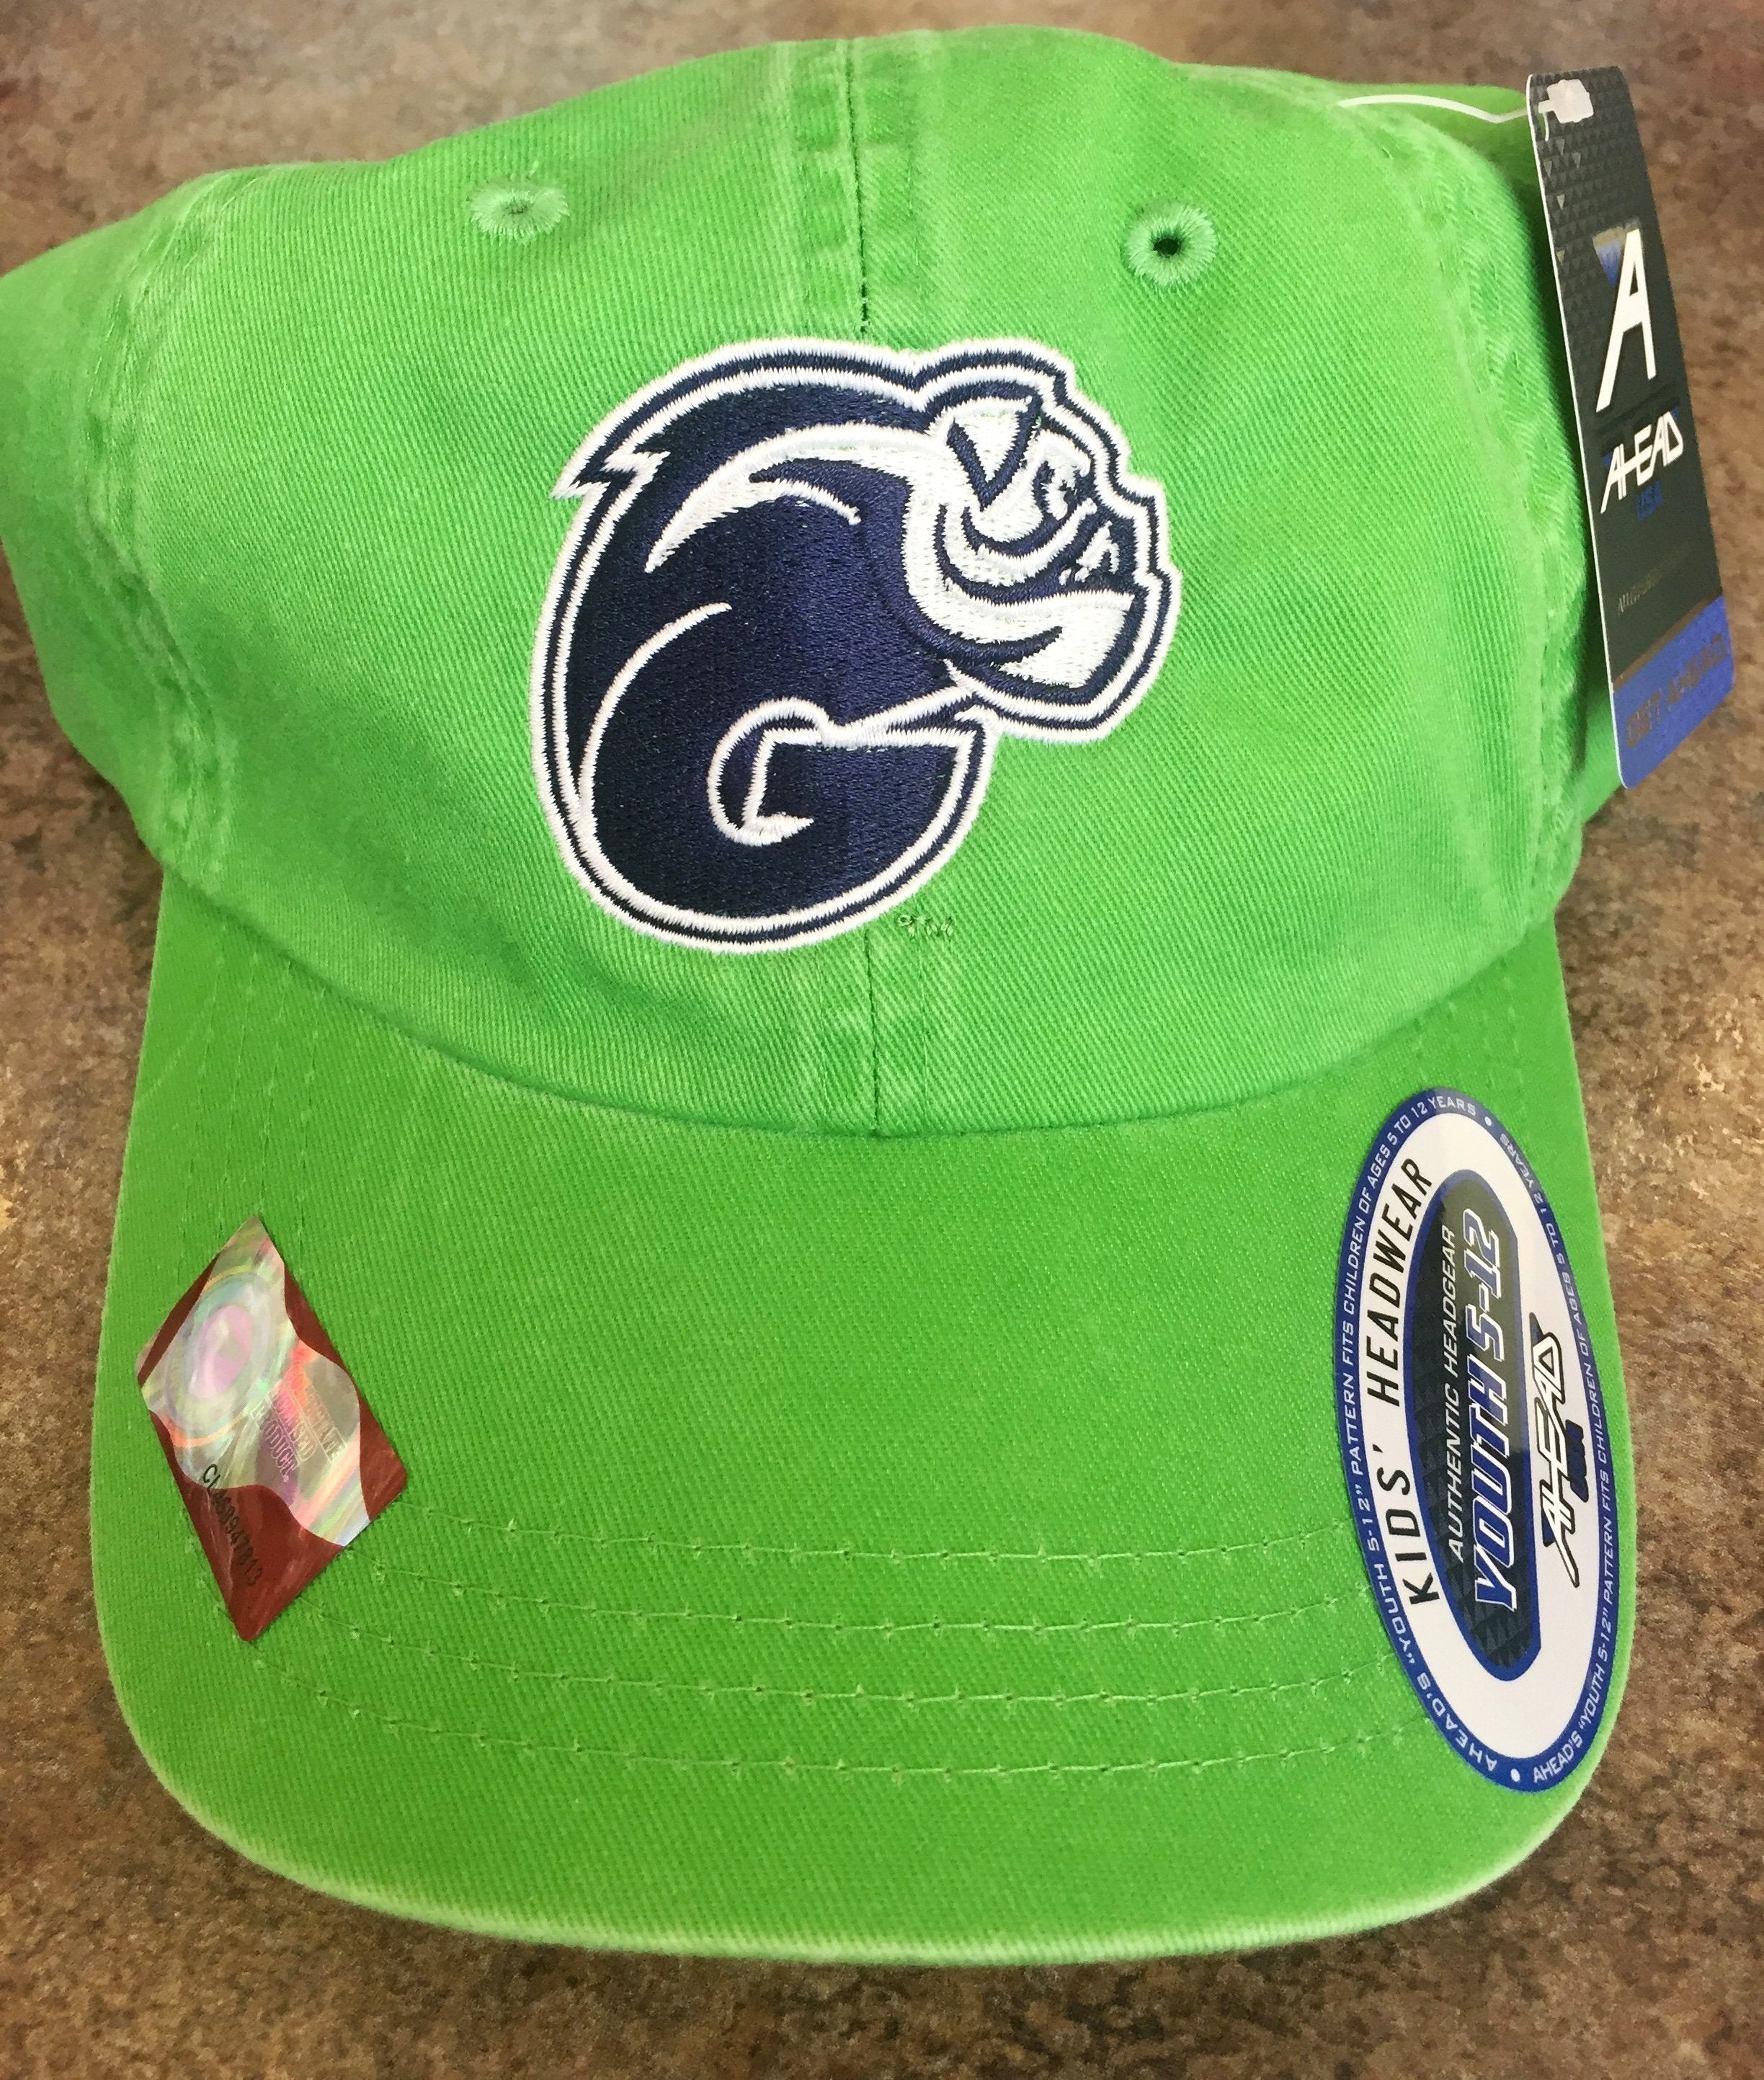 G-Dog Kids Hats by Ahead – Ave Maria University Store 3986cf0bfe3